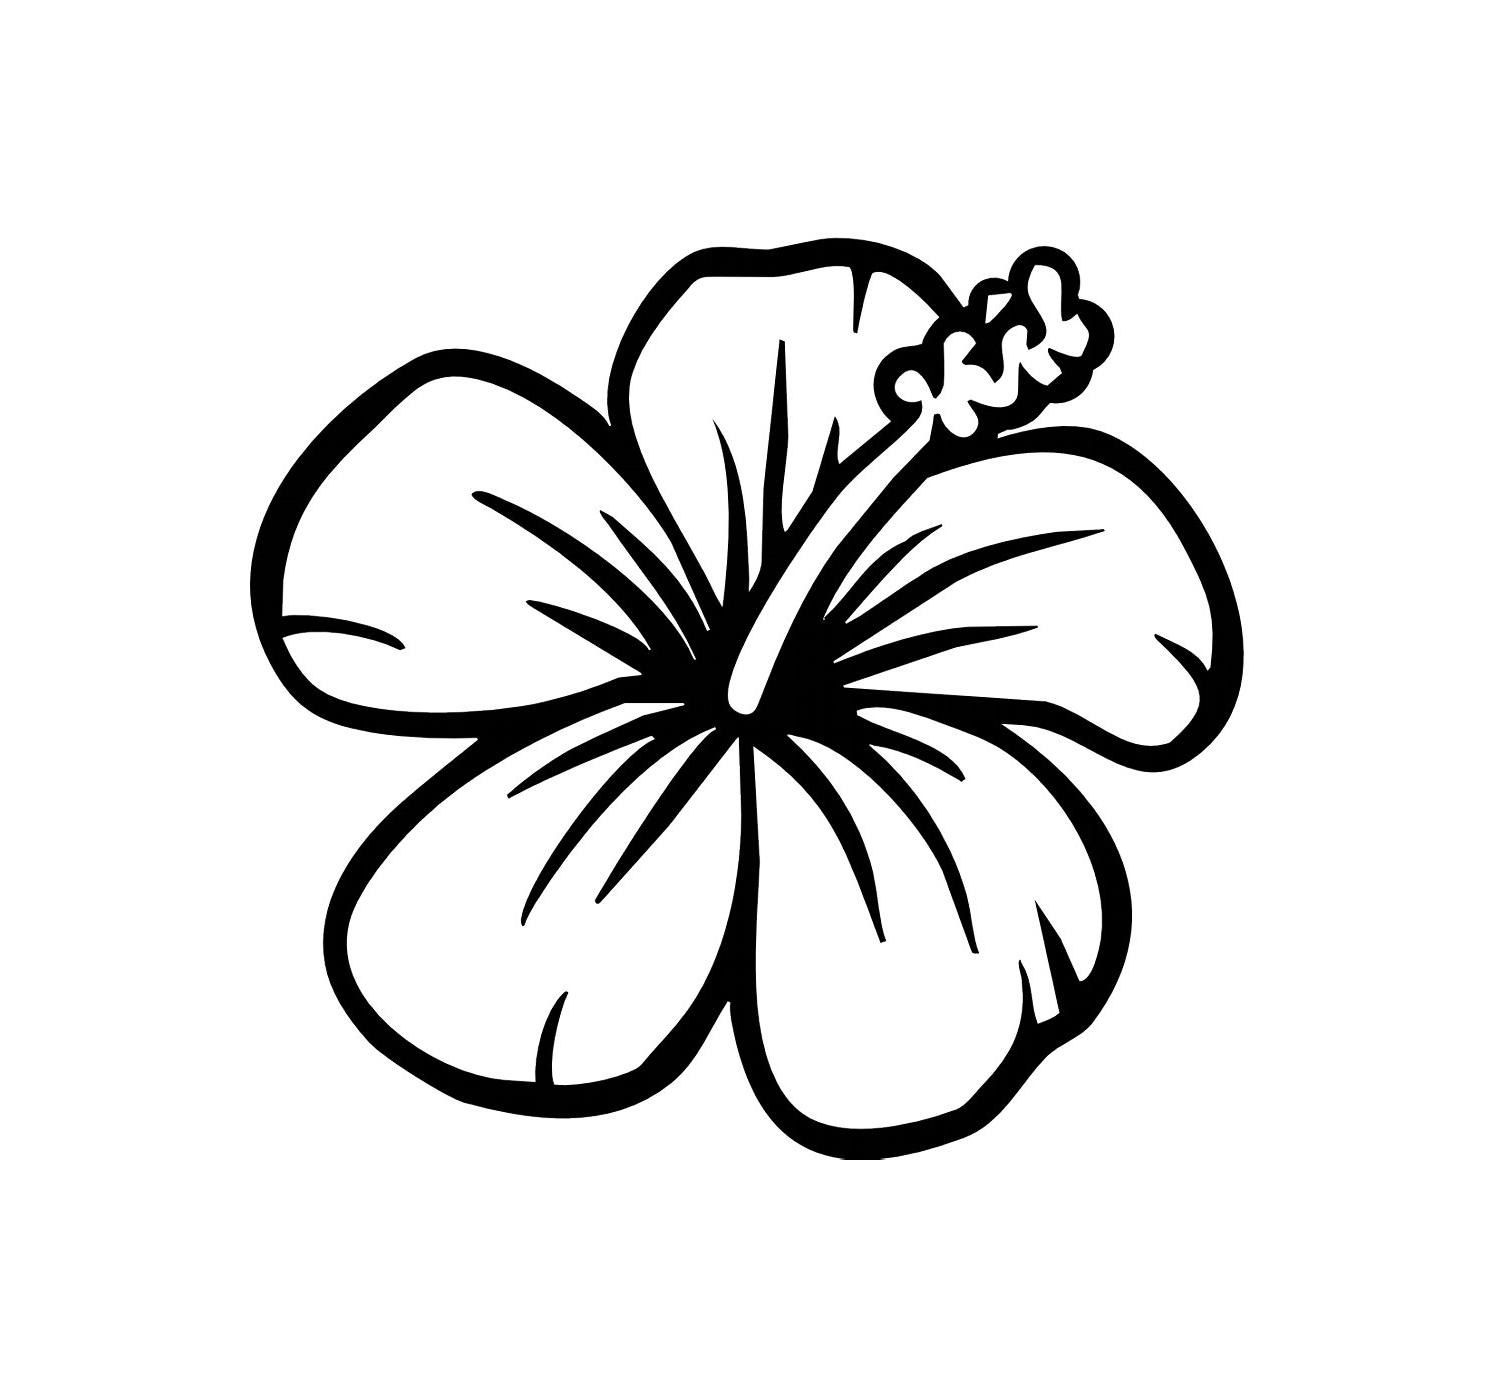 Tropical Flower Line Drawing : Easy leaf outline image nextinvitation templates art